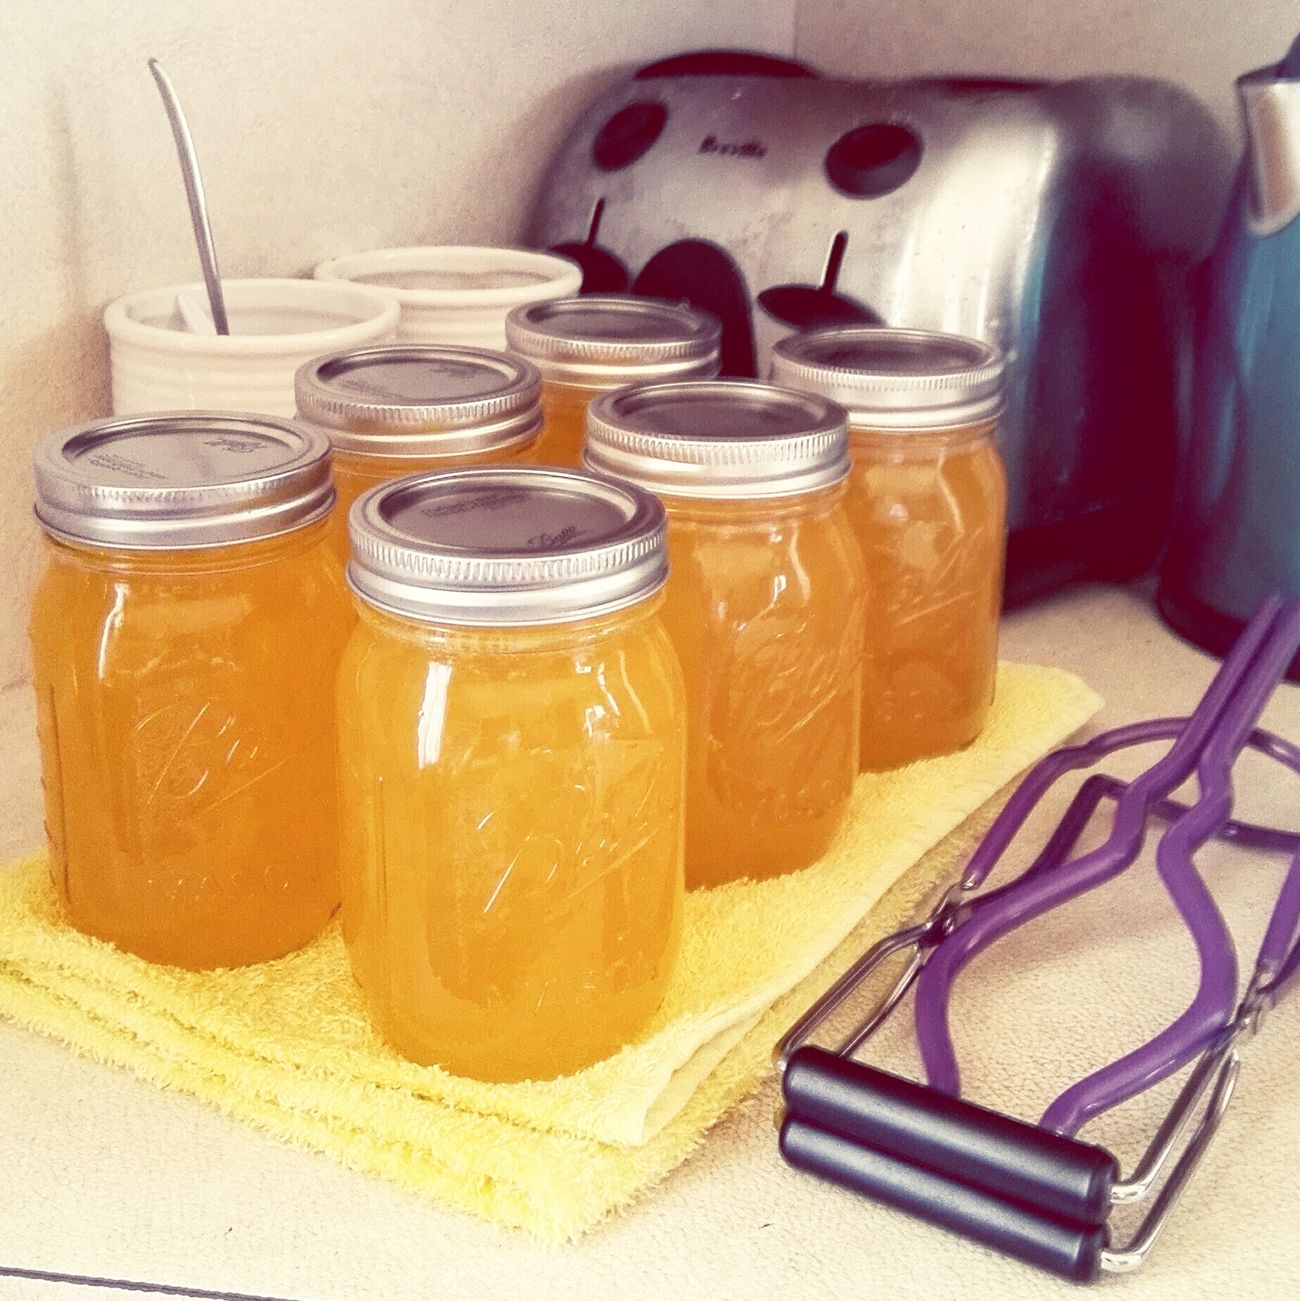 When life gives you lemons...make Lemonade. Preserving Jars Canning Jars Yellow Canning Preserving Bottling Ball Jars